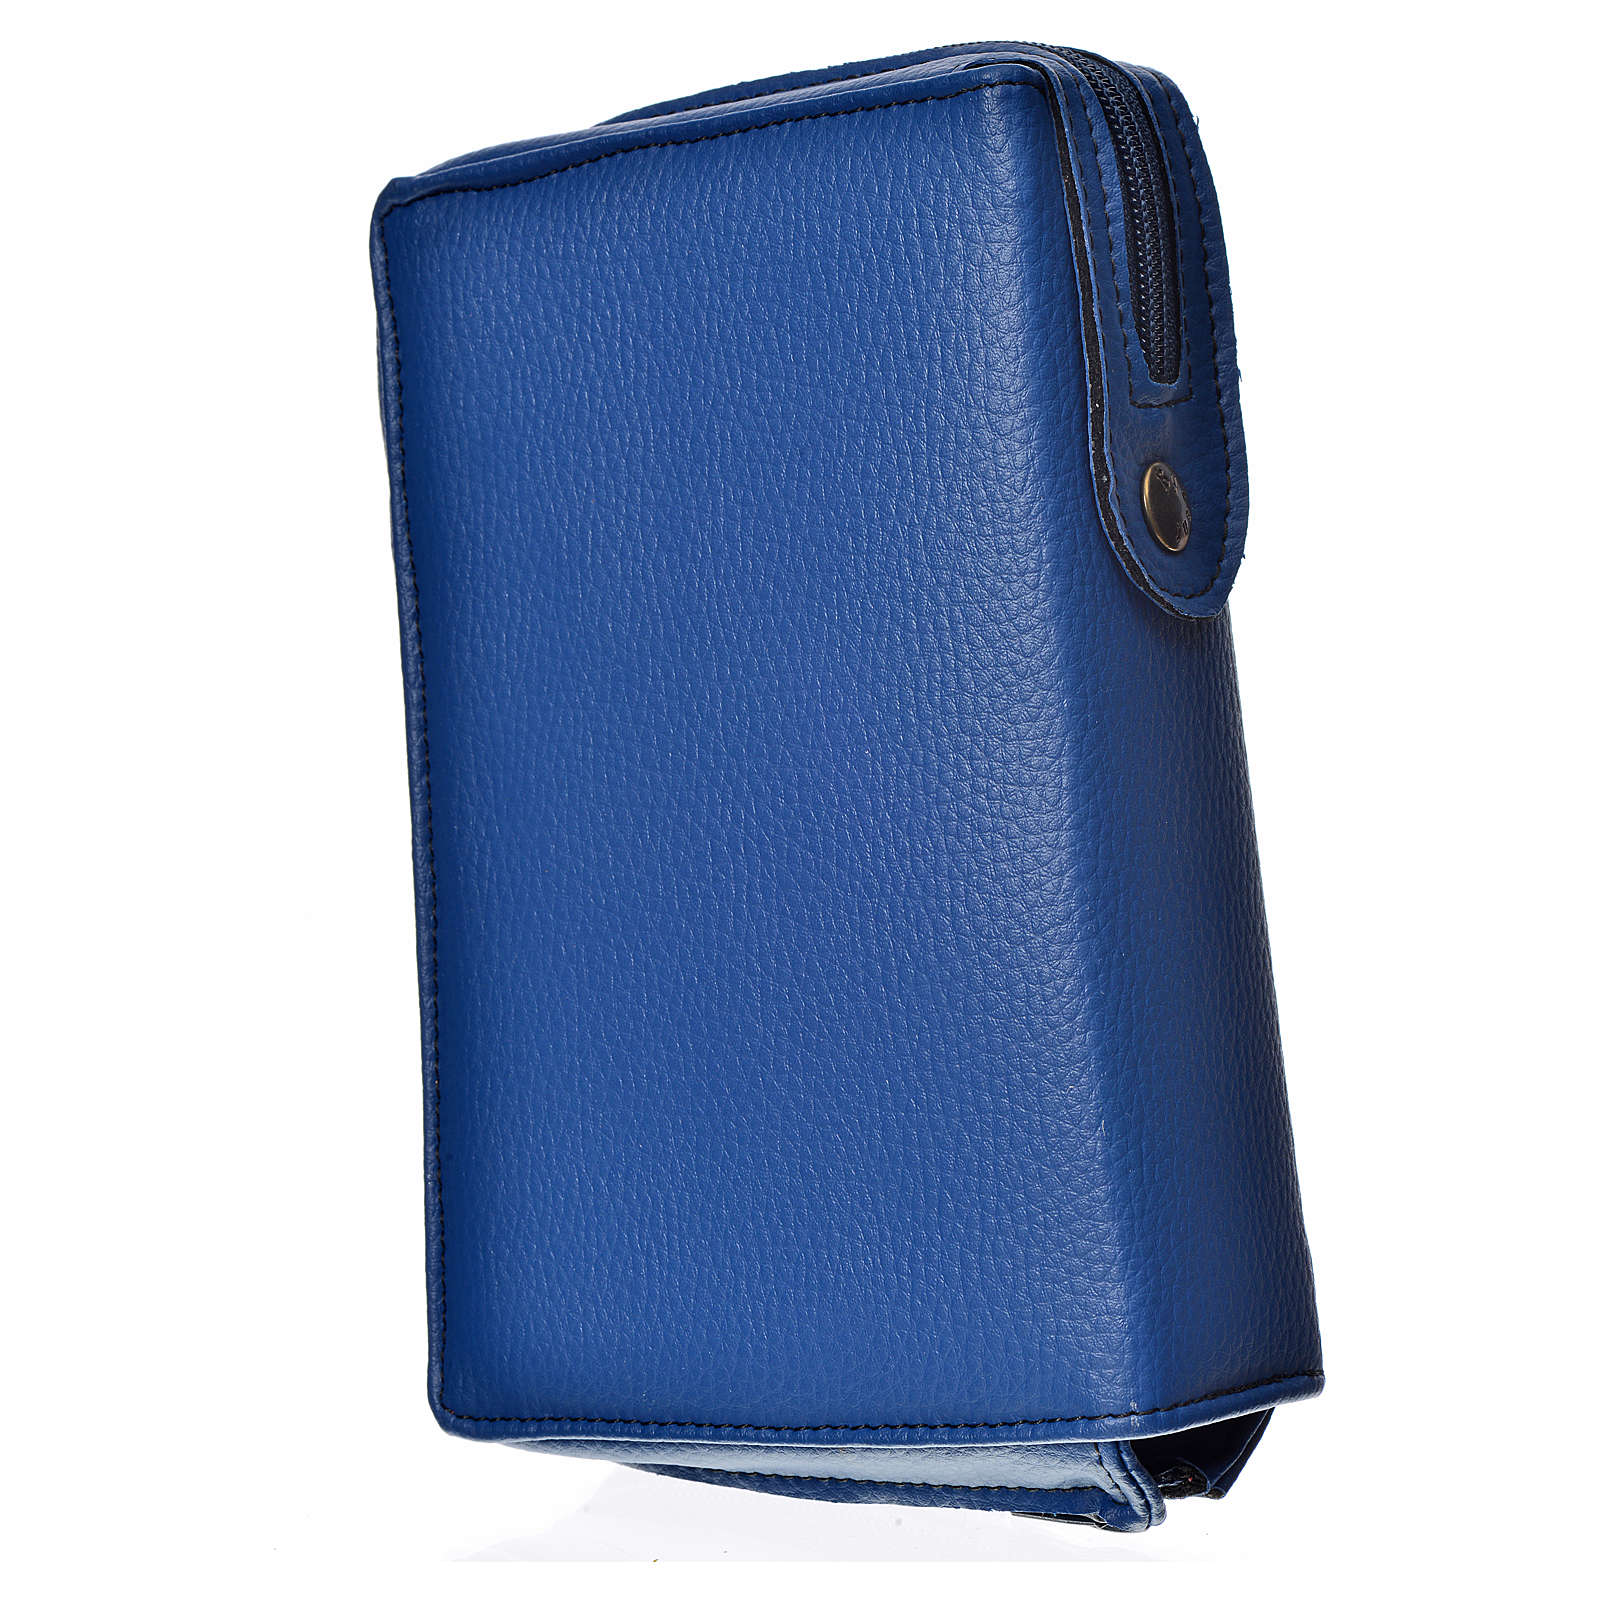 Ordinary Time III cover, light blue bonded leather with image of Our Lady of Kiko 4